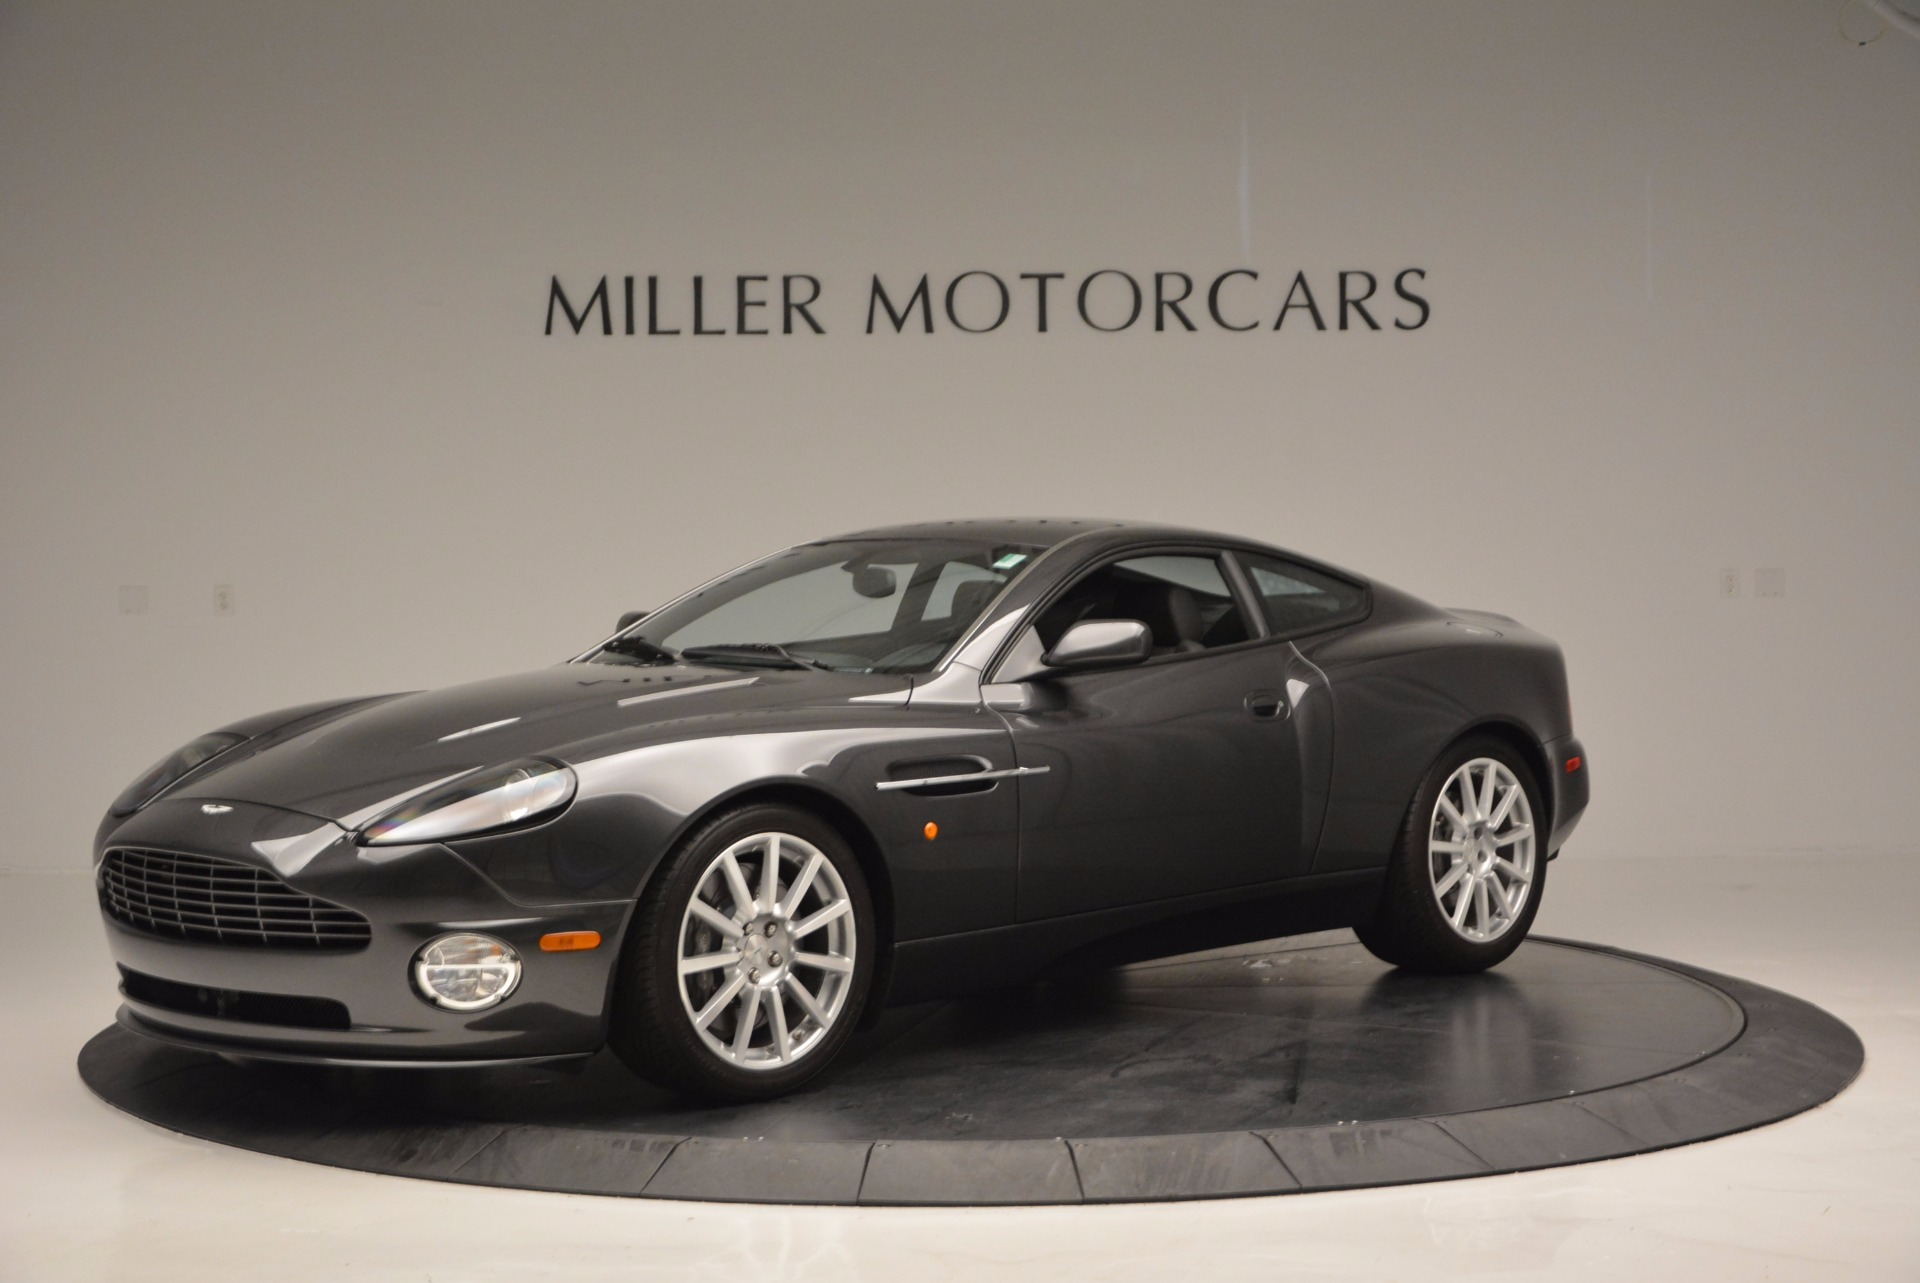 Used 2005 Aston Martin V12 Vanquish S For Sale In Greenwich, CT. Alfa Romeo of Greenwich, 7097 645_p2